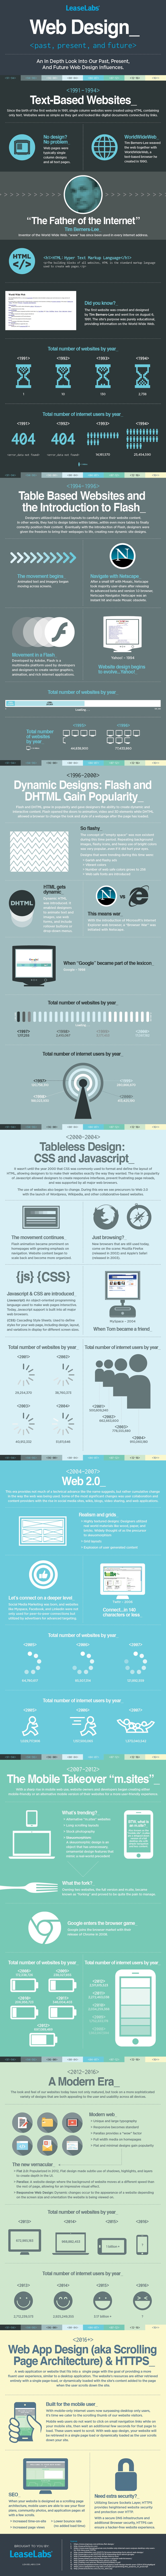 LL_Infographic_History_Web_Design_FINAL.jpg